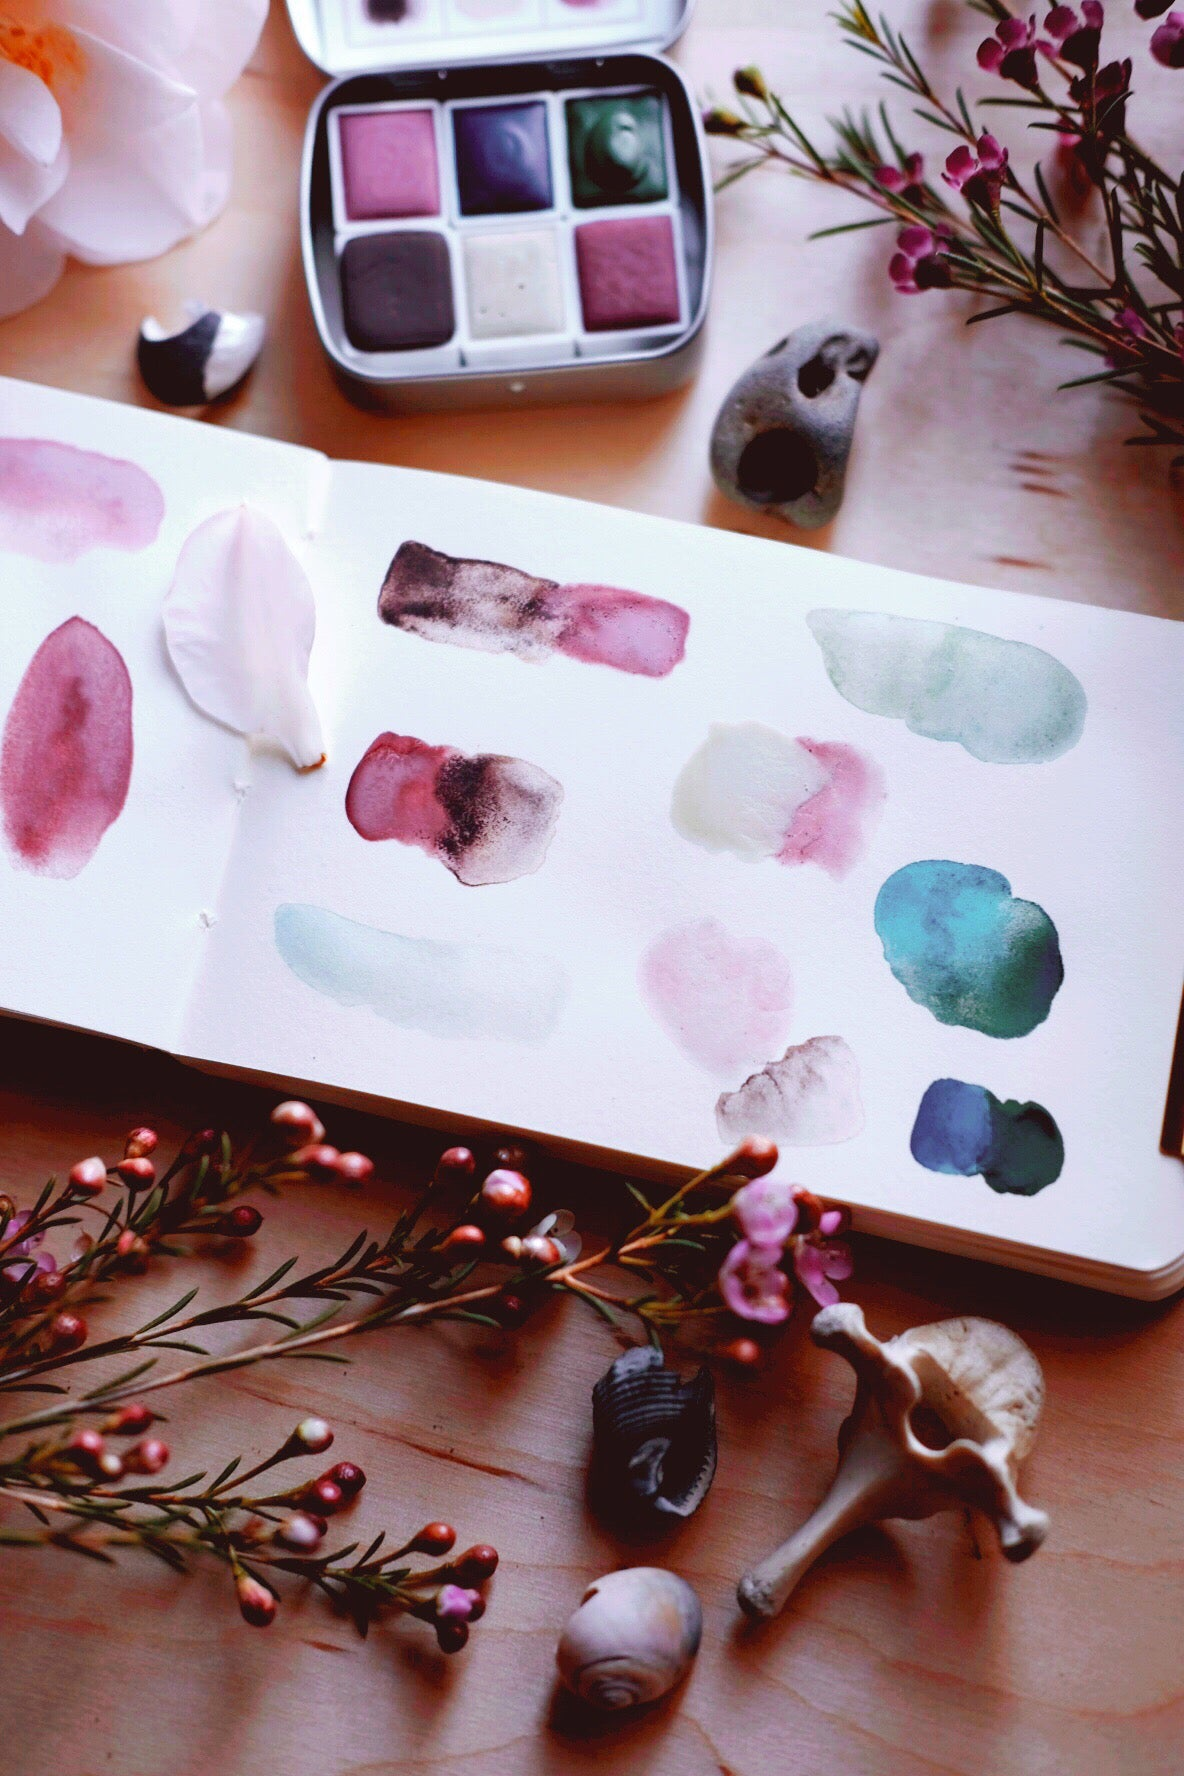 RESERVE for Becky + Seashell Floret - Limited edition Gemstone Mineral watercolor palette